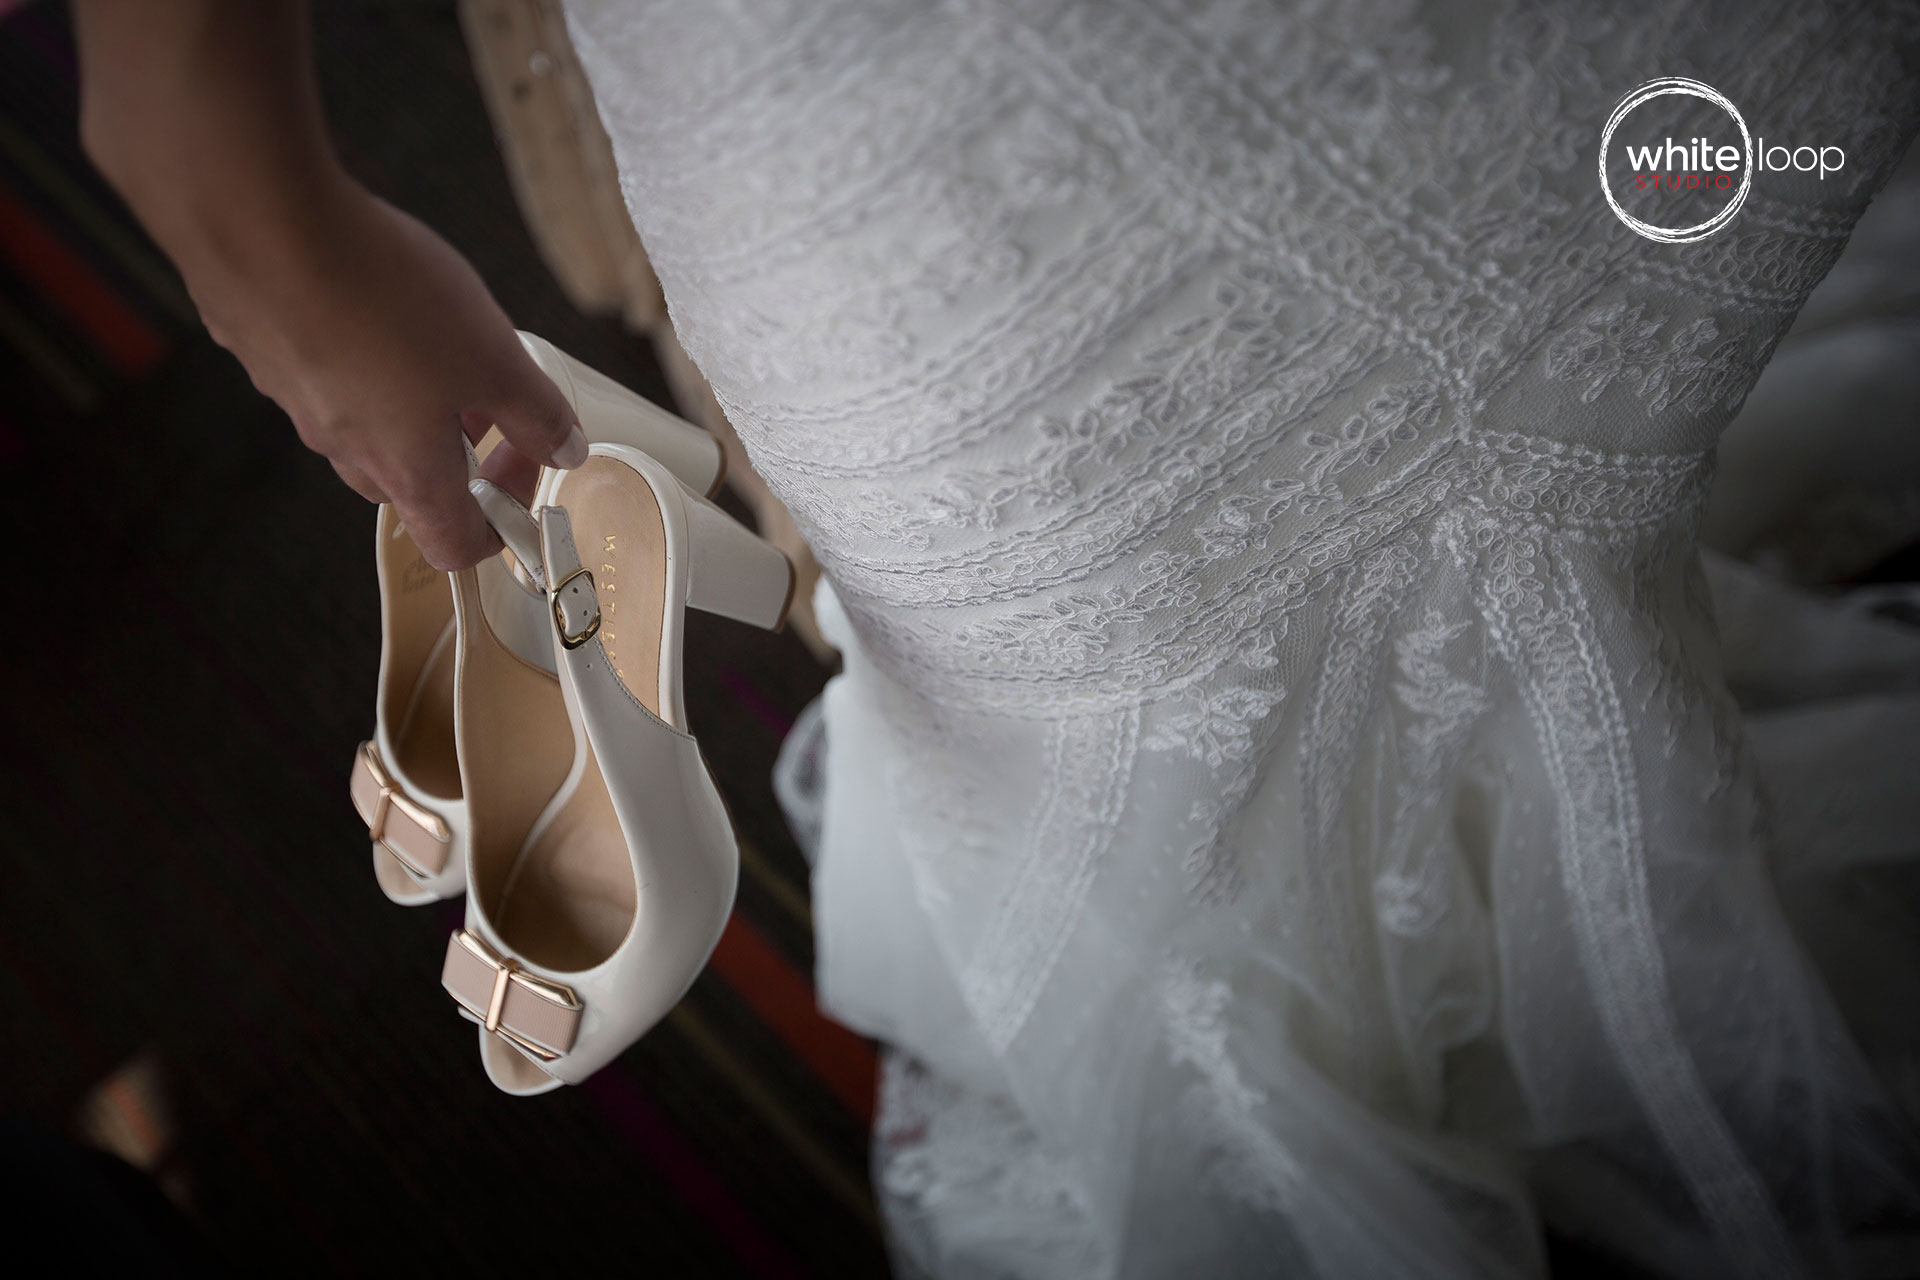 The bride holding her heels.